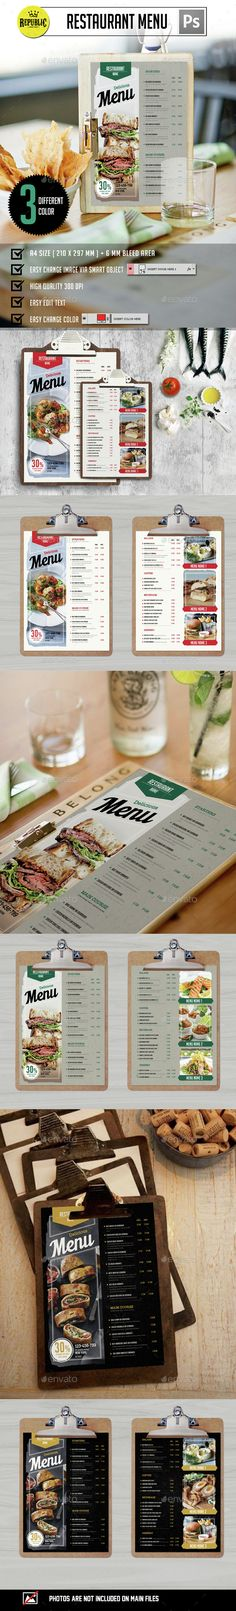 Clean restaurant menu ad clean aff restaurant menu food and drink menu board food and drink menu board menu board template powerpoint new novisign s menu board templates food and drink menu board Restaurant Menu Template, Restaurant Menu Design, Modern Restaurant, Restaurant Restaurant, Lunch Menu, Dinner Menu, Web Design, Food Design, Corporate Design